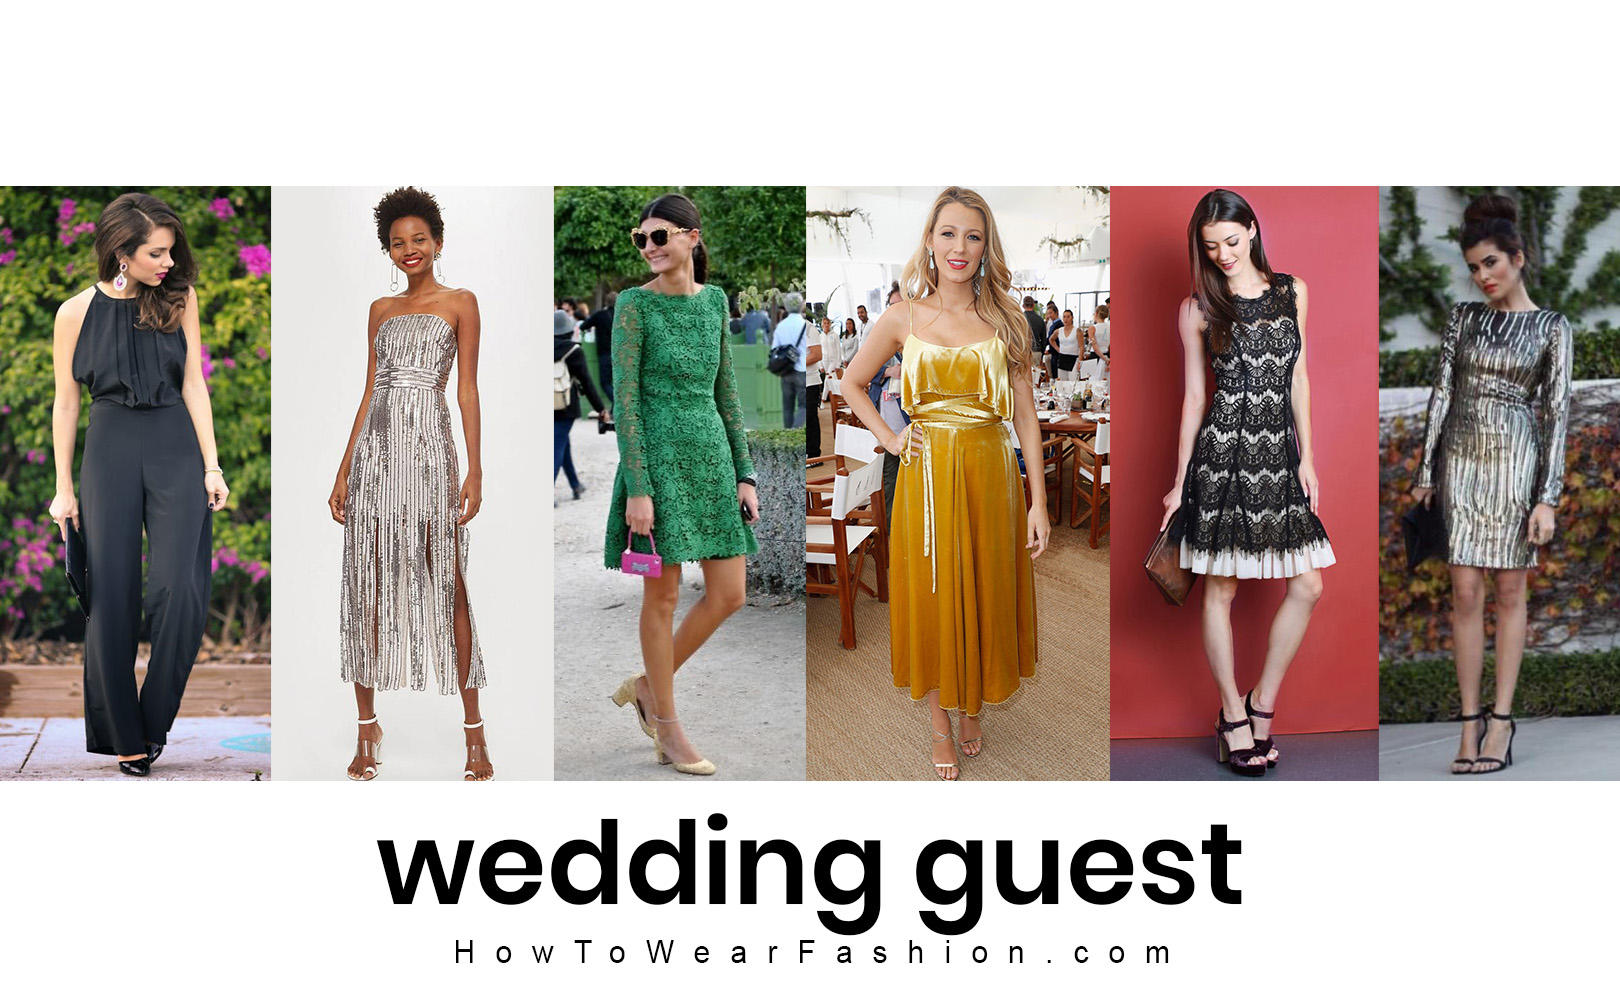 What to wear for a fall wedding - wedding guest ideas for outfits, hair & makeup!